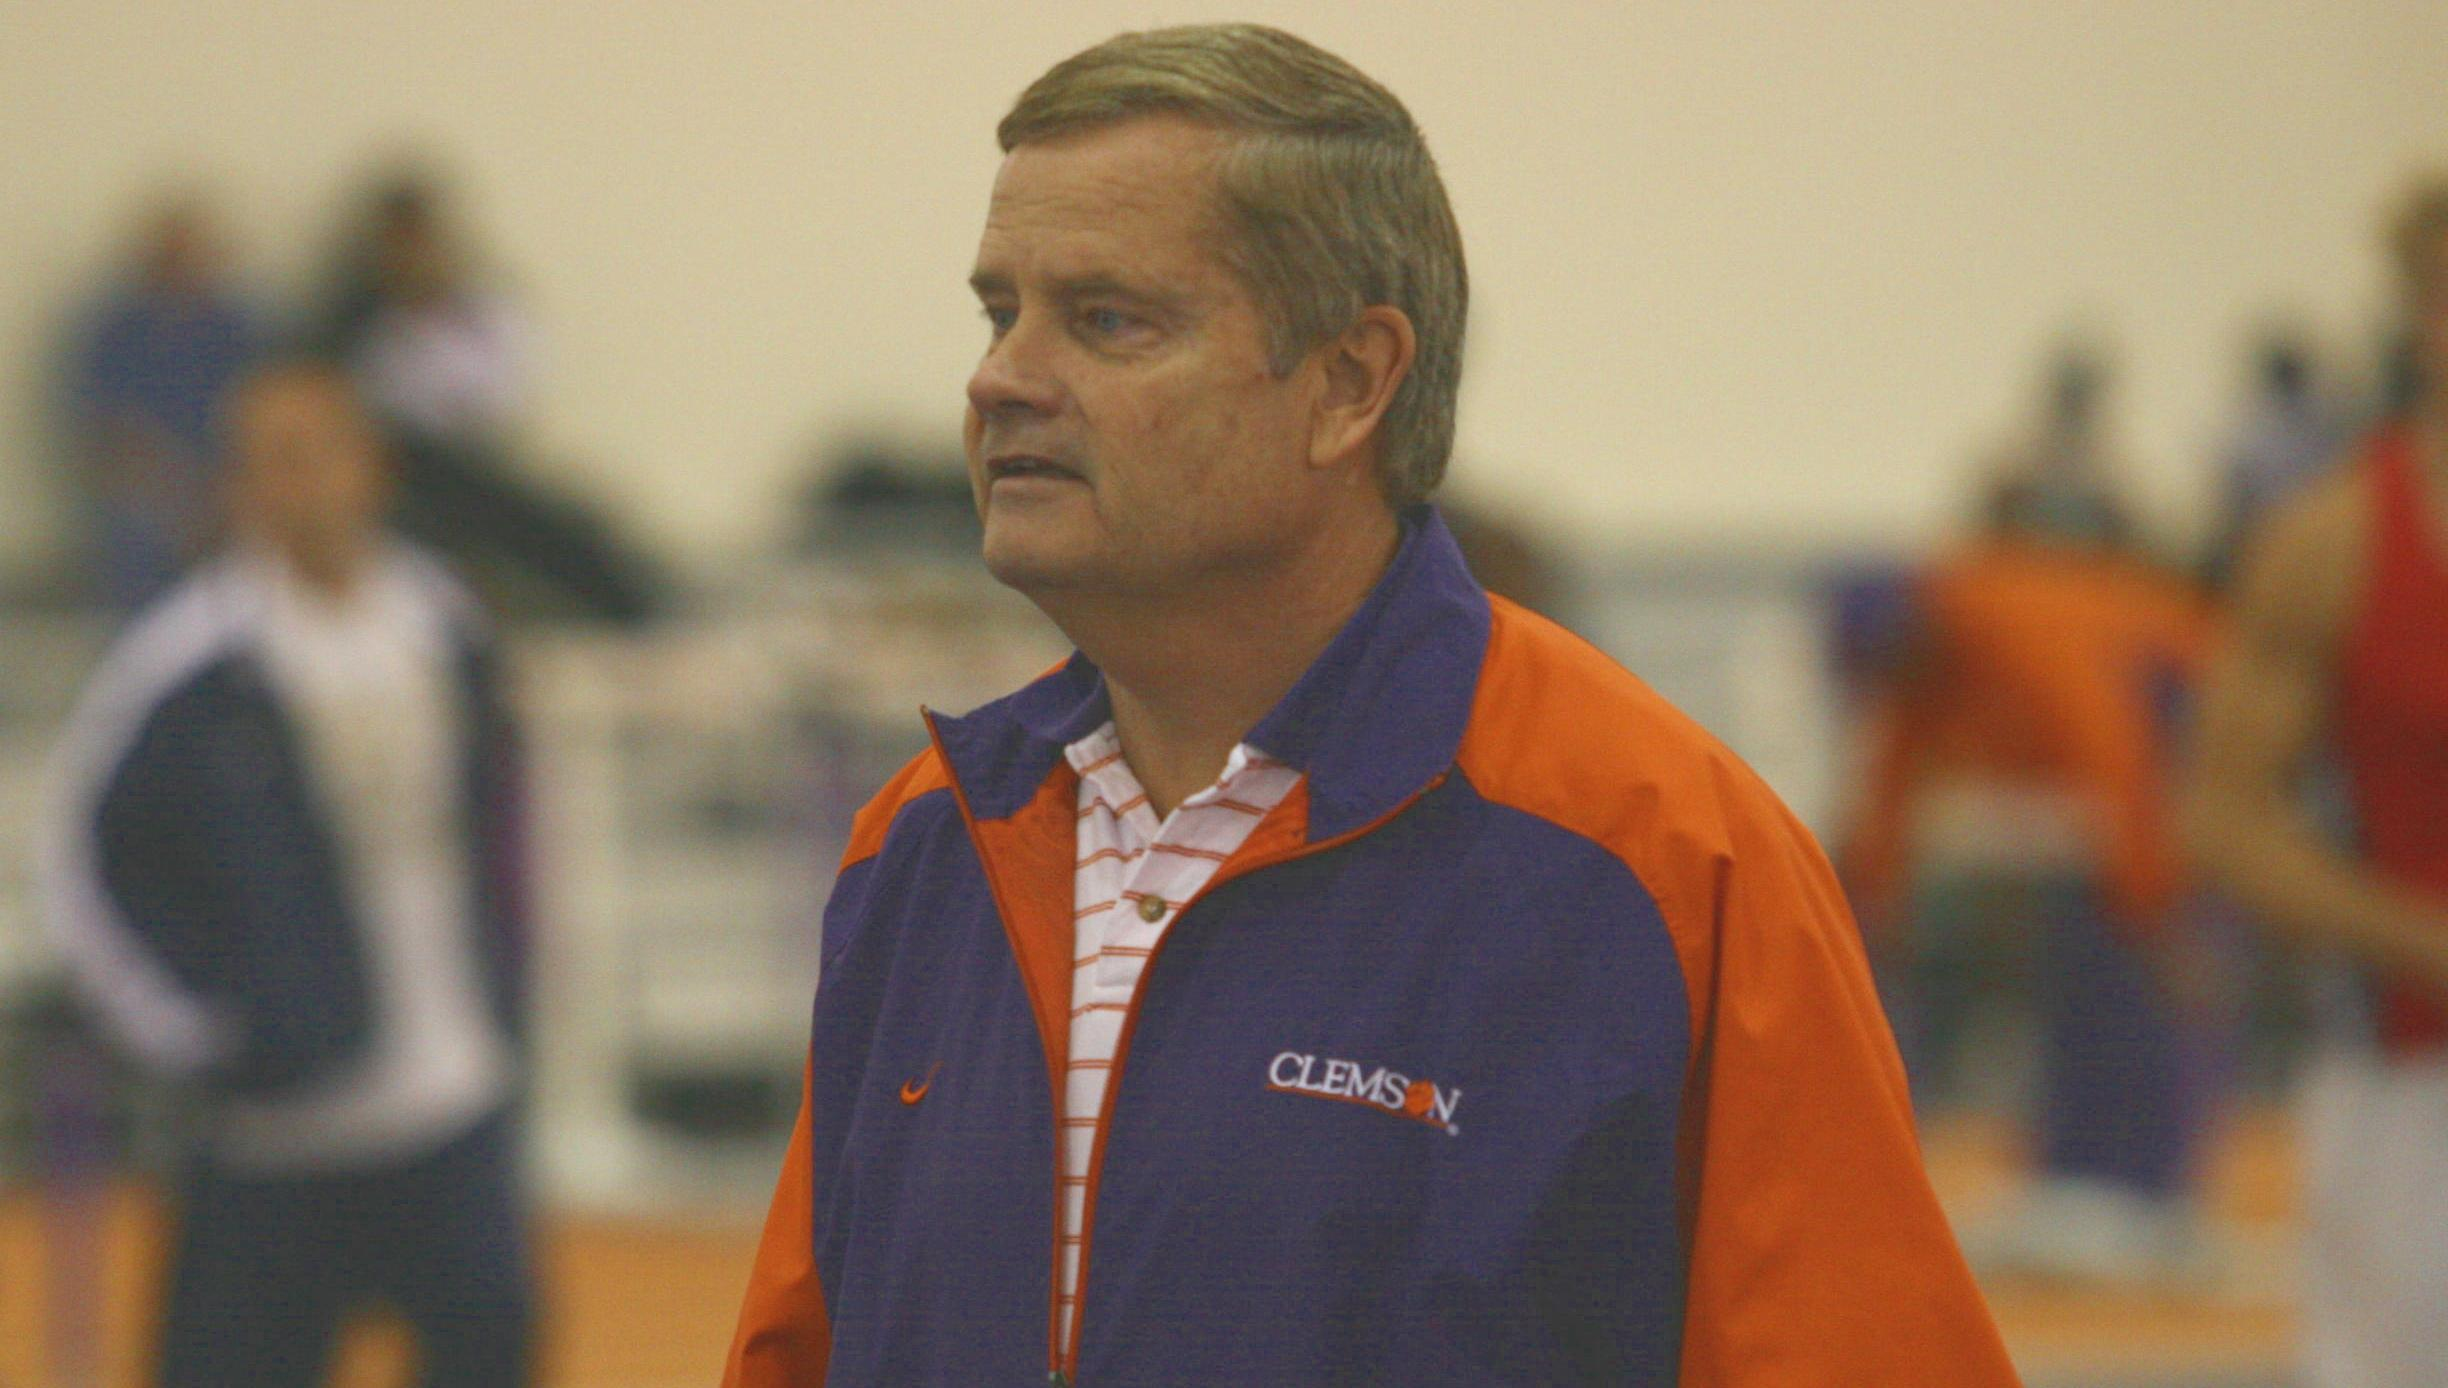 Pollock to be Inducted into USTFCCCA Hall of Fame